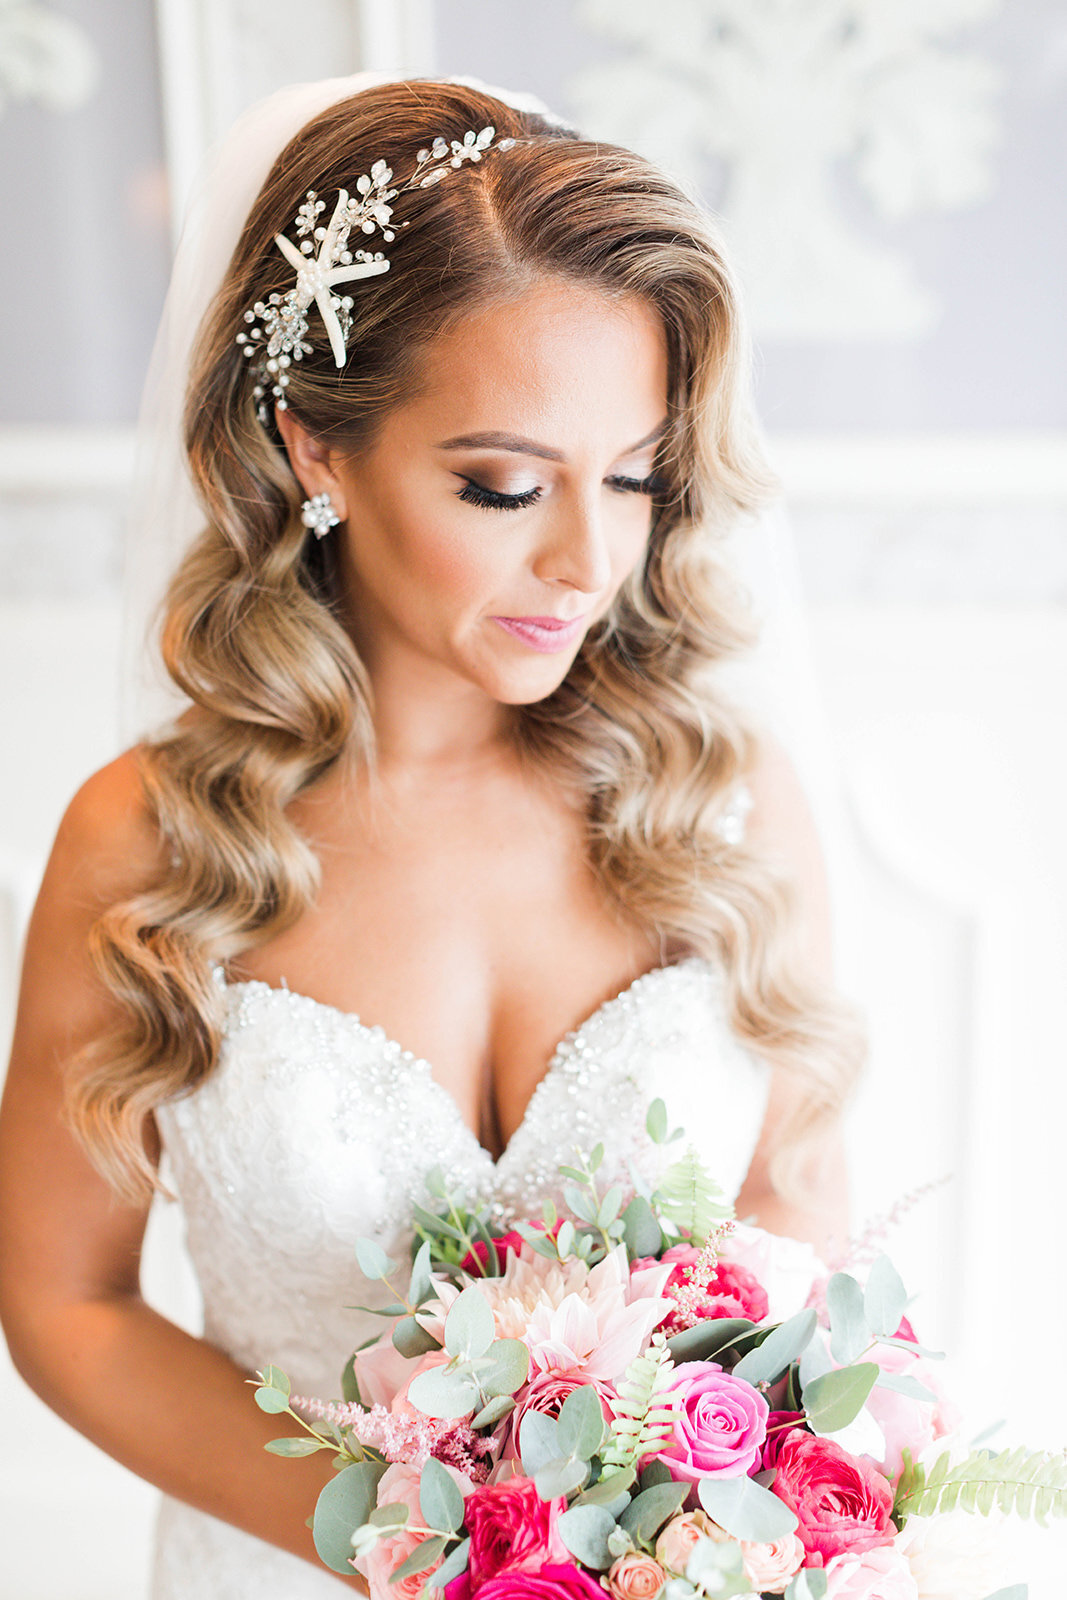 Beyoutiful Bride On Location Hair Makeup Bridal Bridesmaid New Jersey Beauty Company3